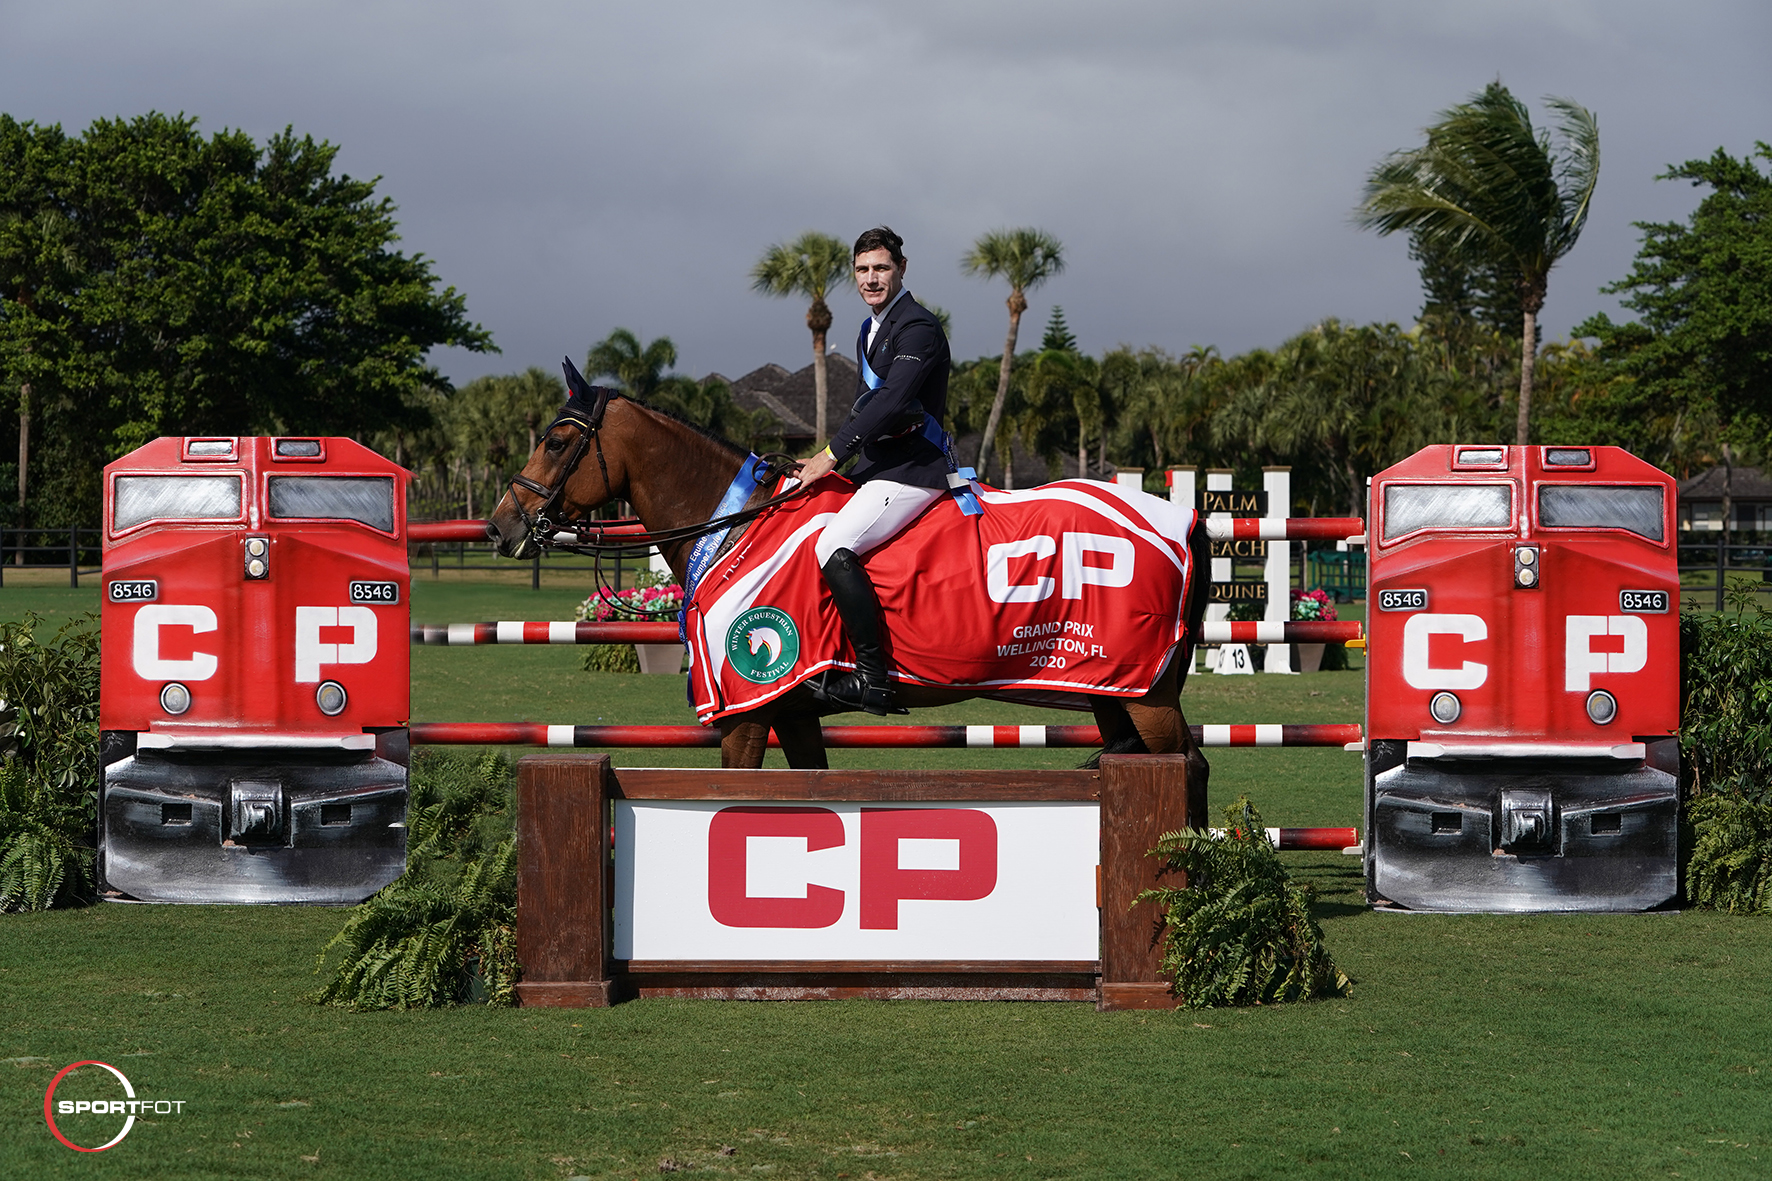 Peter Lutz and Quinta 106 by Sportfot 528_3532 Laura